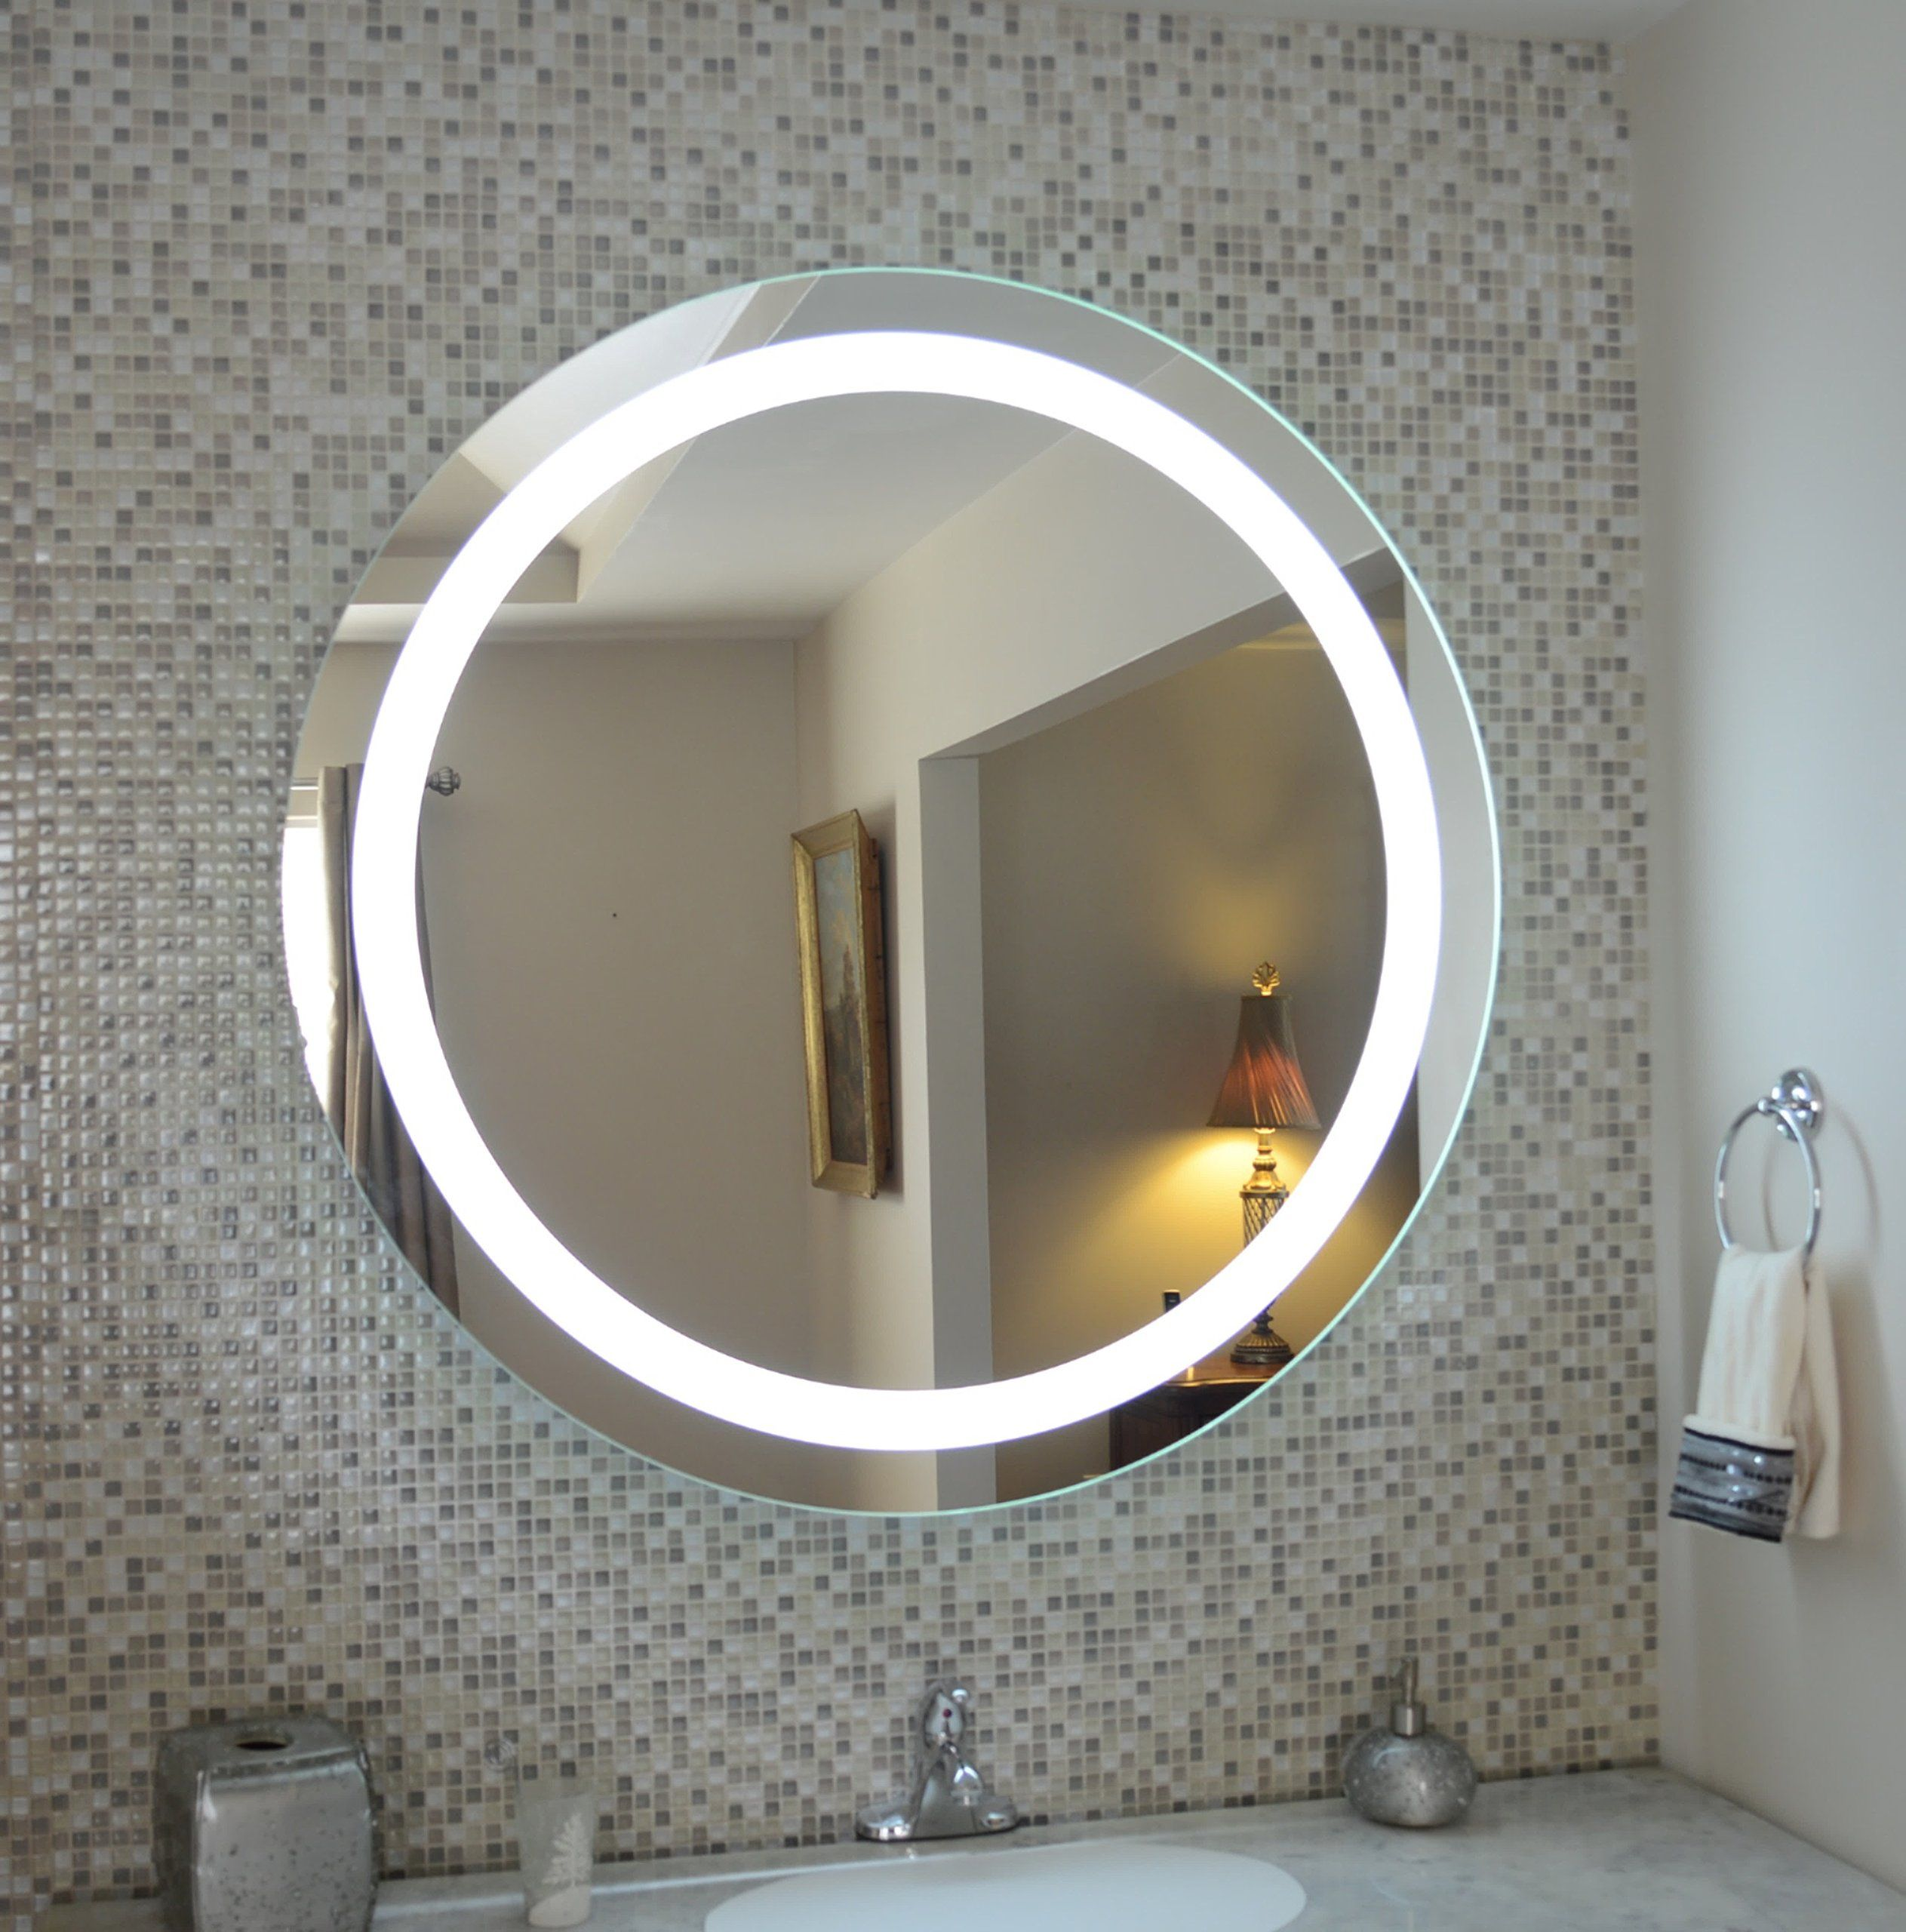 bathroom wall mounted mirrors wall mounted lighted vanity mirror led mam1d40 17143 | a36ad3953cbe884319dfd8f4ae1ee065